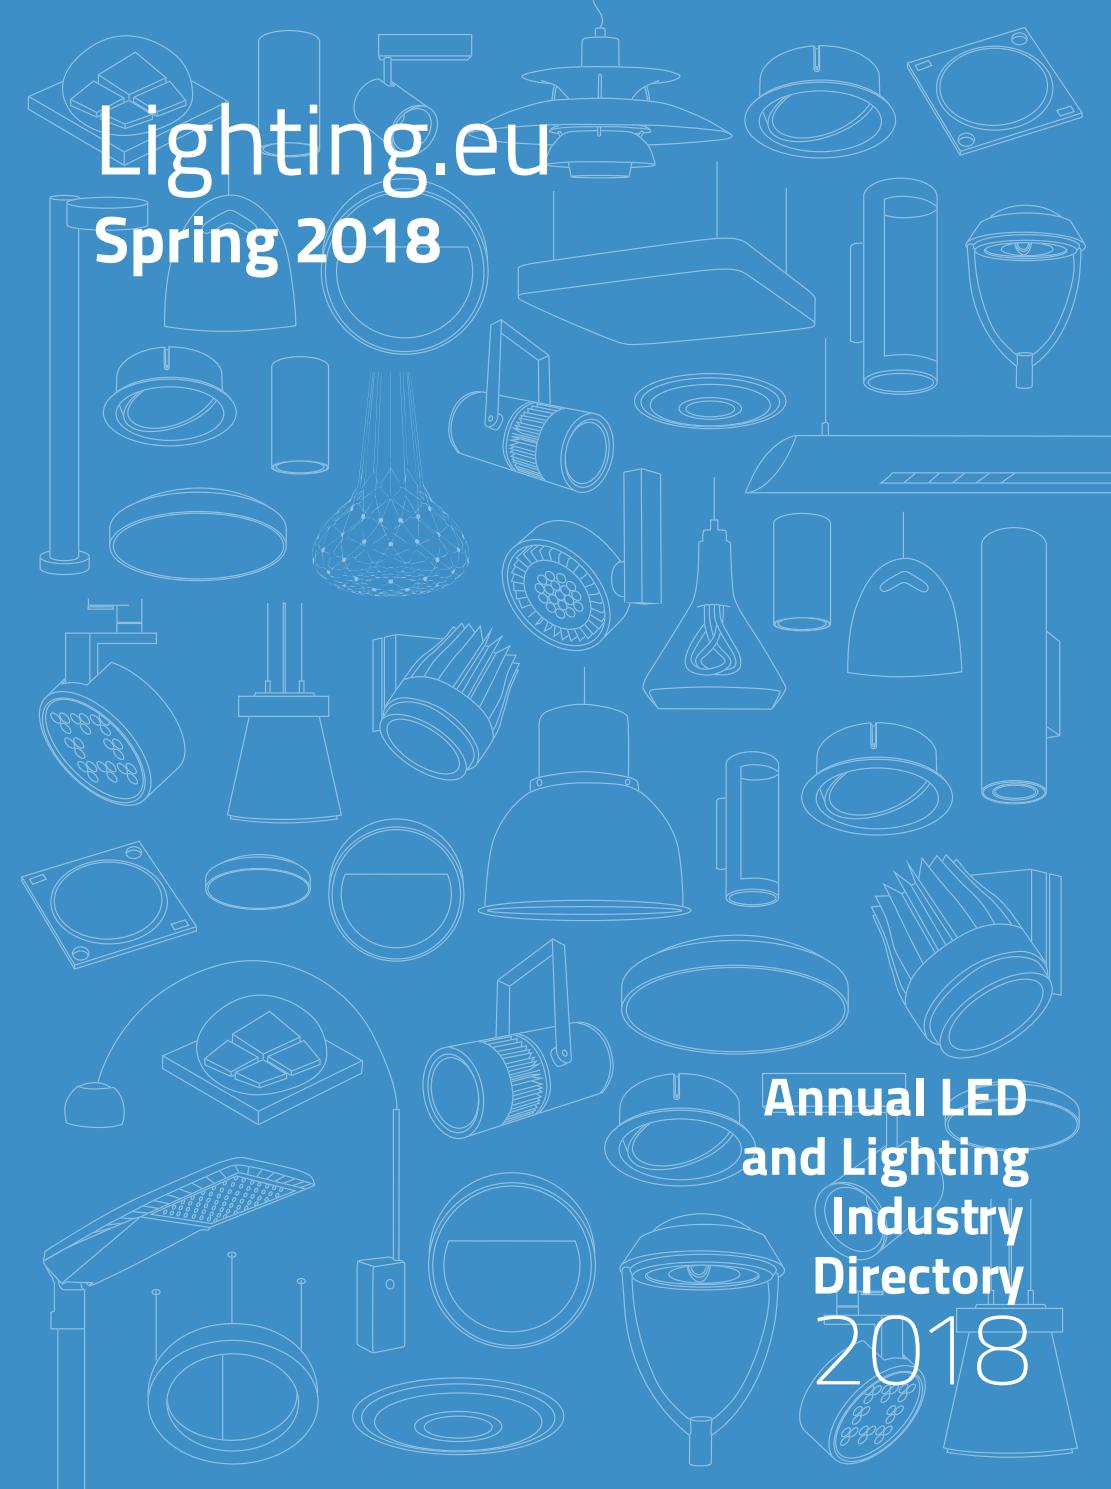 e7bb4c4dd3d Lighting.EU Spring 2018 by LIGHTING.EU - issuu